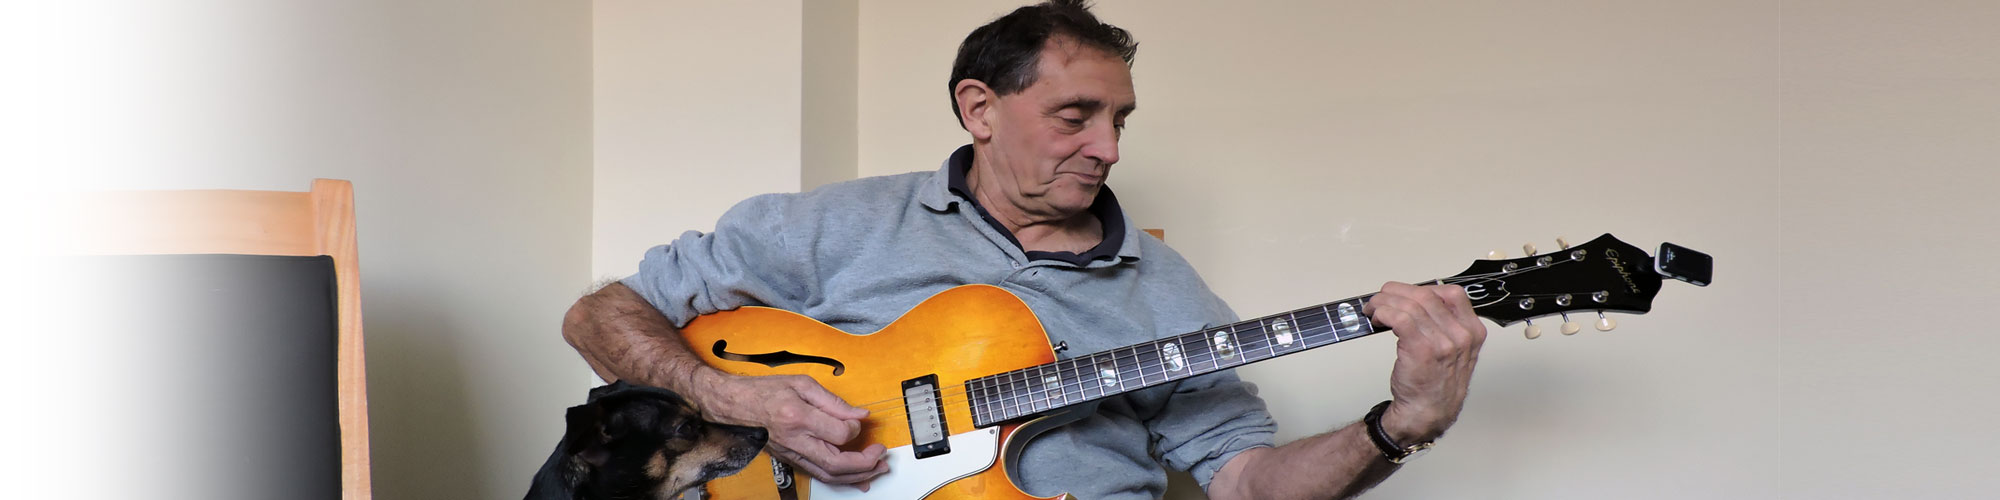 Leeds Guitar lessons for all ages and abilities